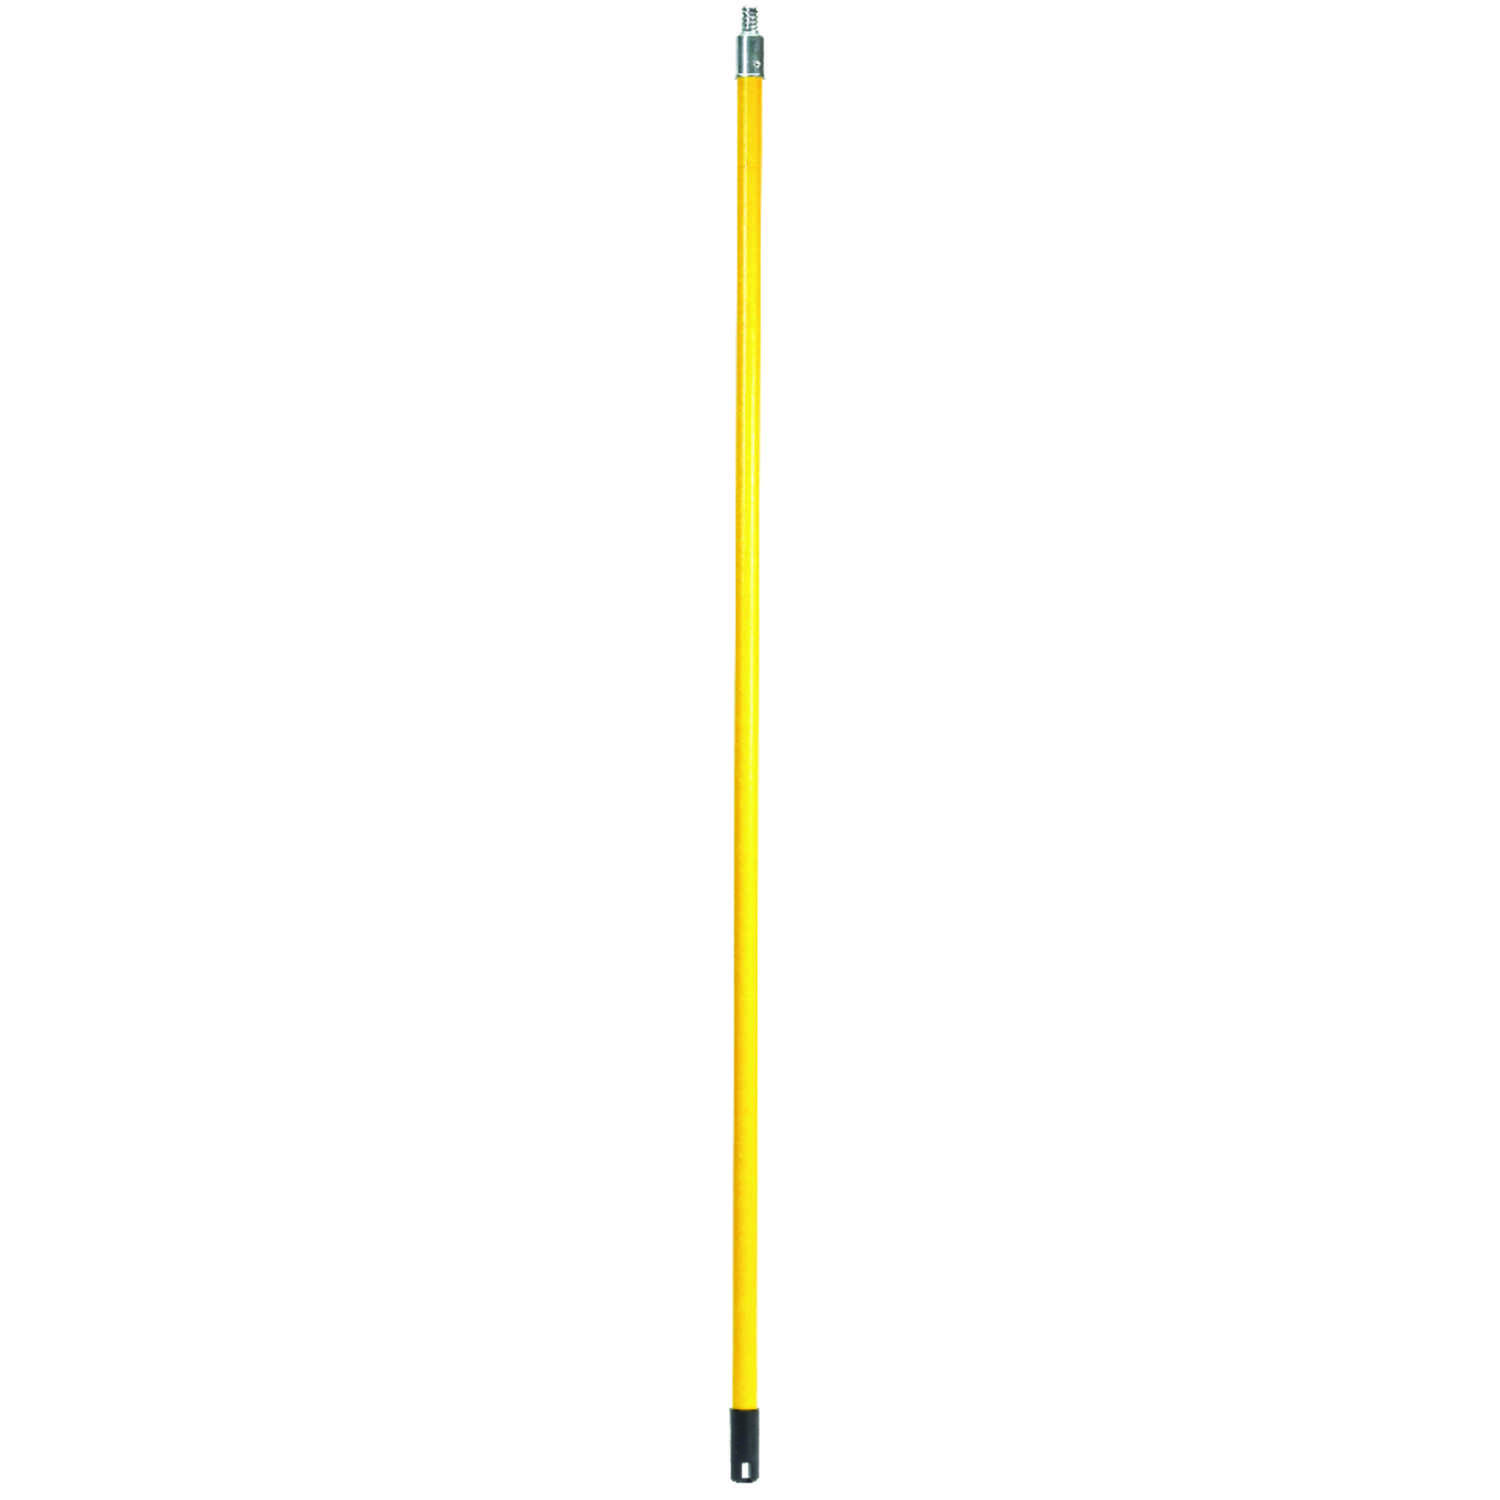 Ace  Telescoping Yellow/Black  5 ft. L x 1 in. Dia. Fiberglass  Extension Pole